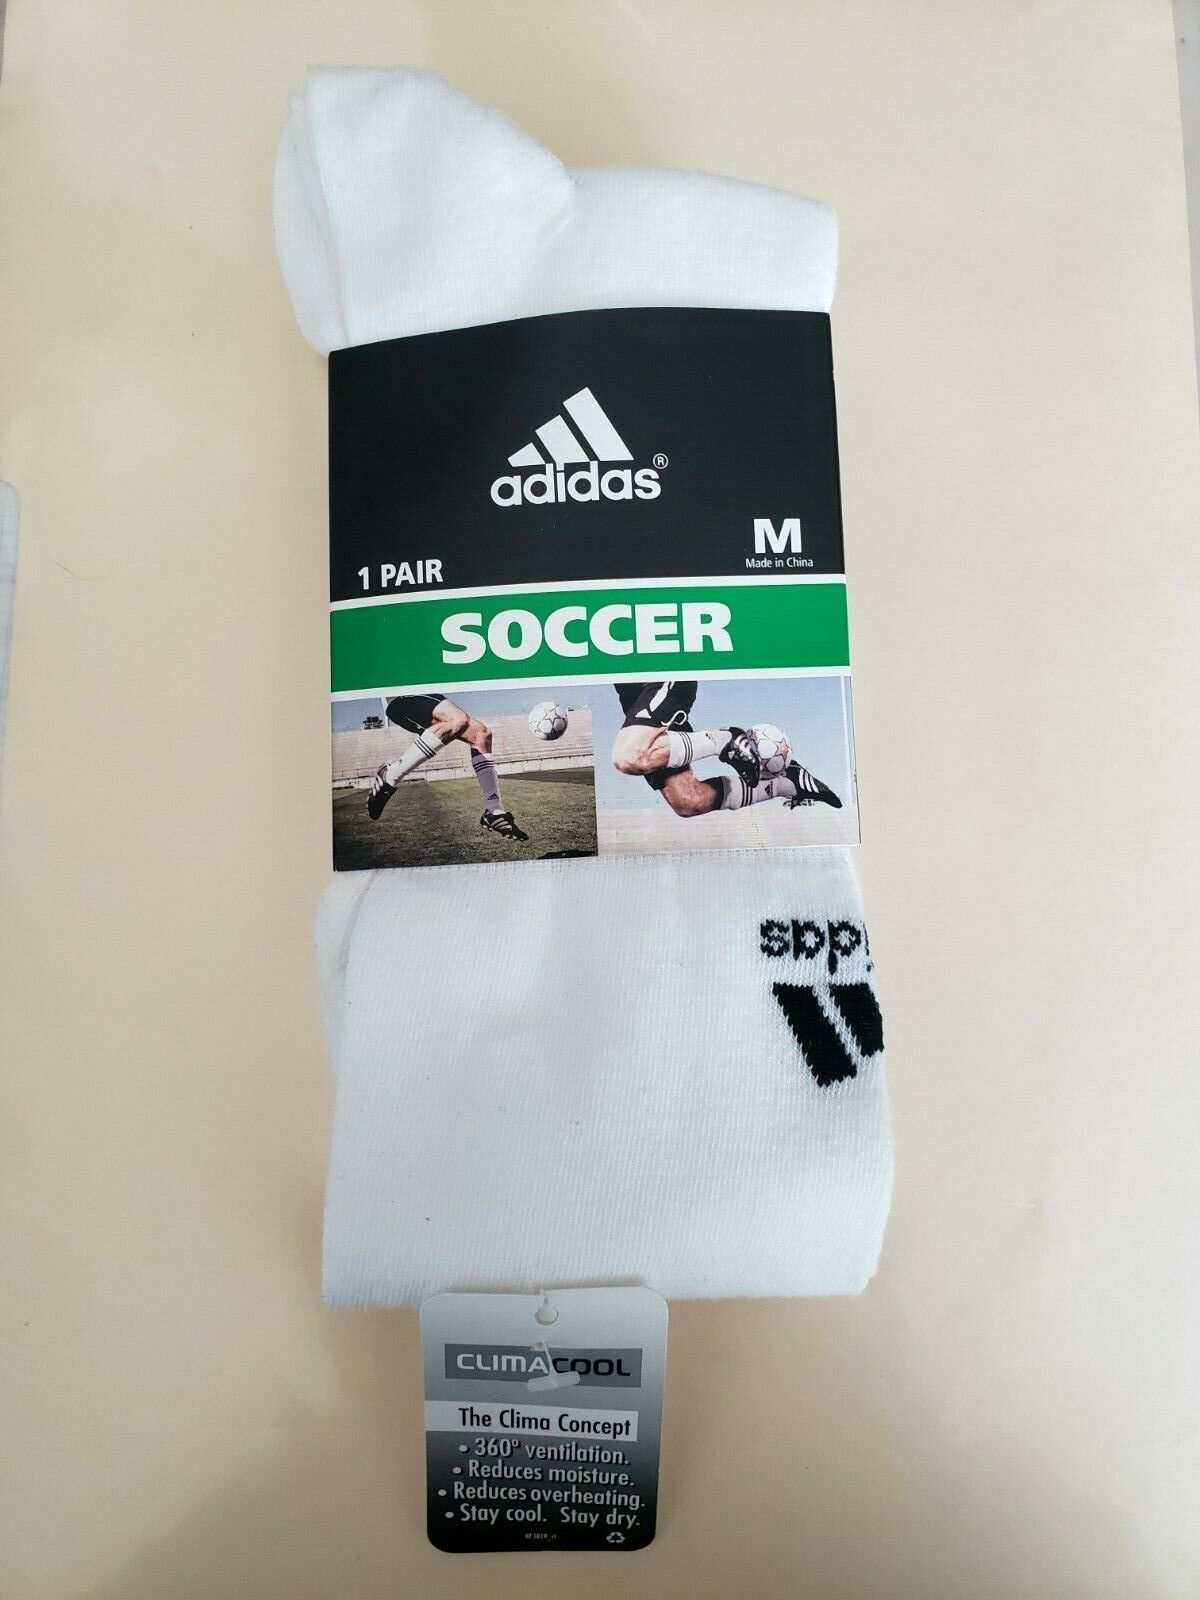 Adidas Soccer Socks, Size M 992425 size 5-8.5 Crew Ships in